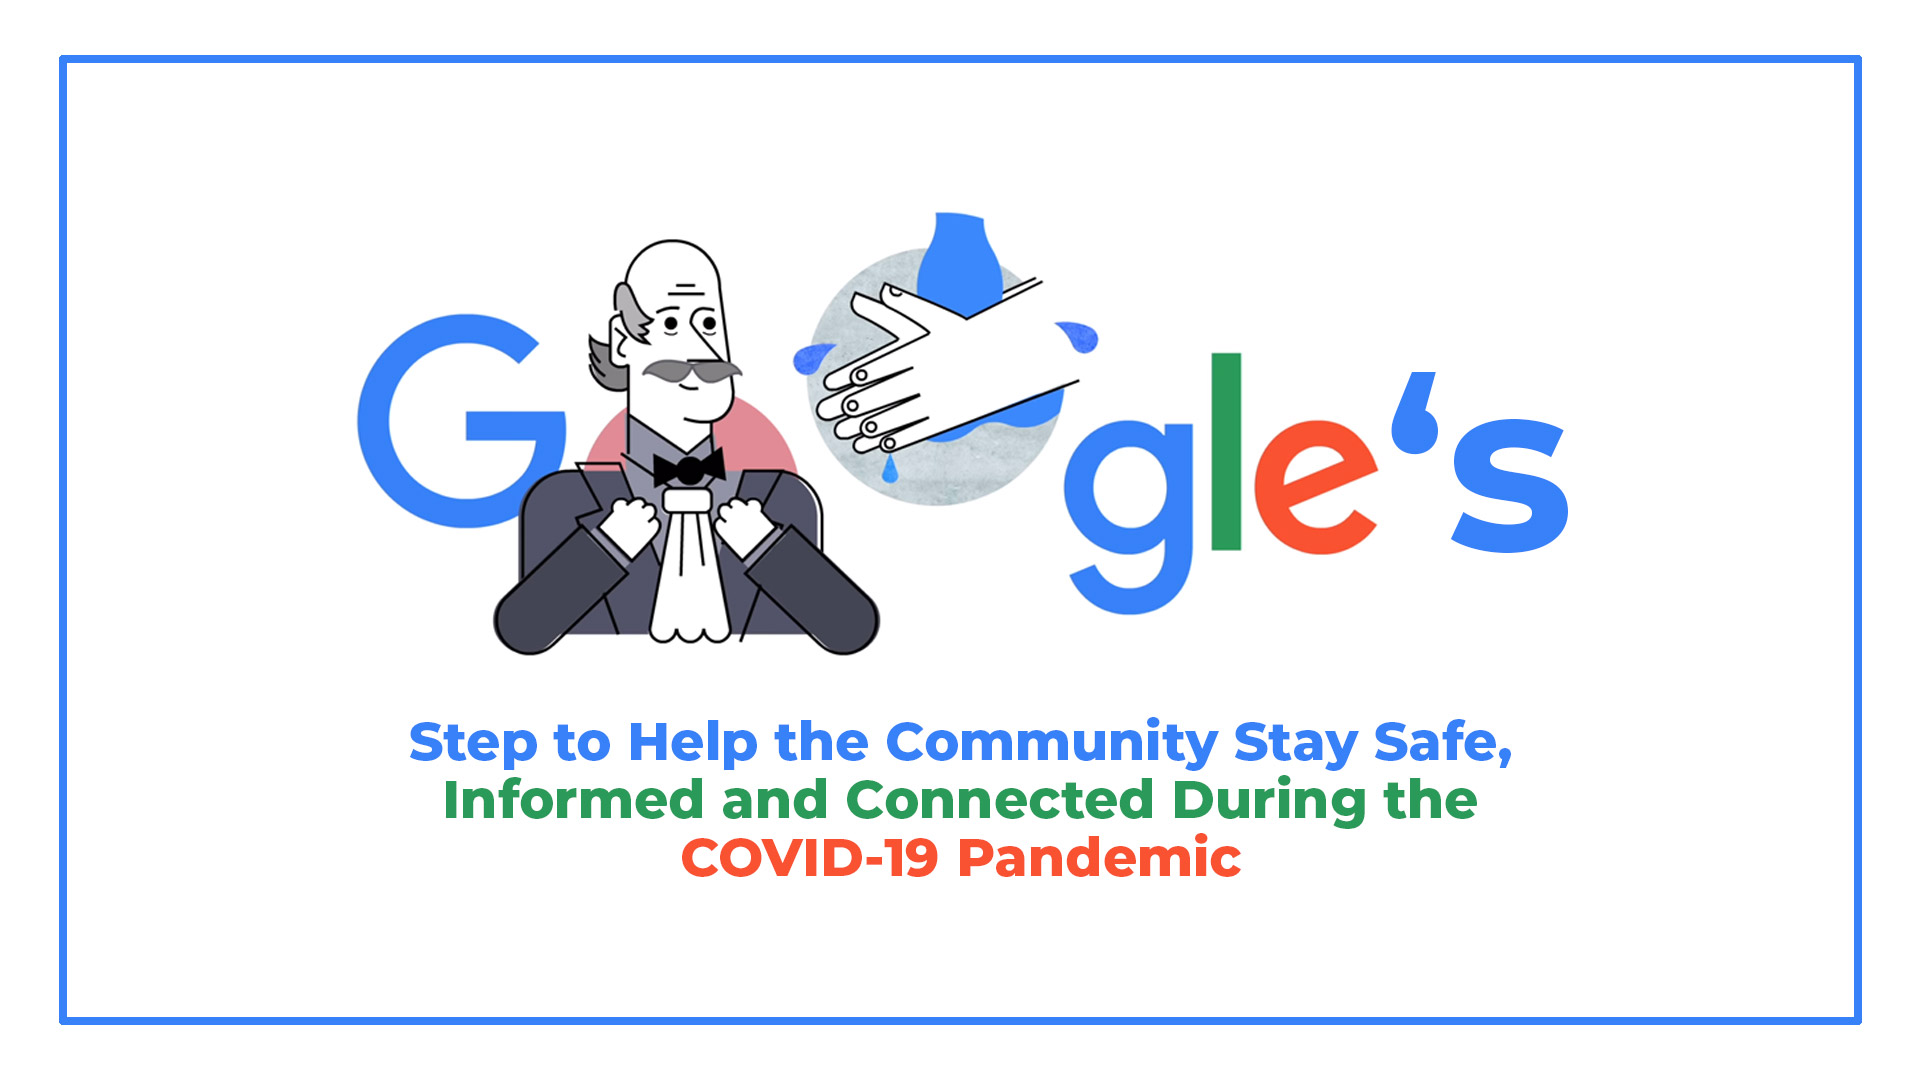 Google's Step to Help the Community Stay Safe, Informed and Connected During the COVID-19 Pandemic